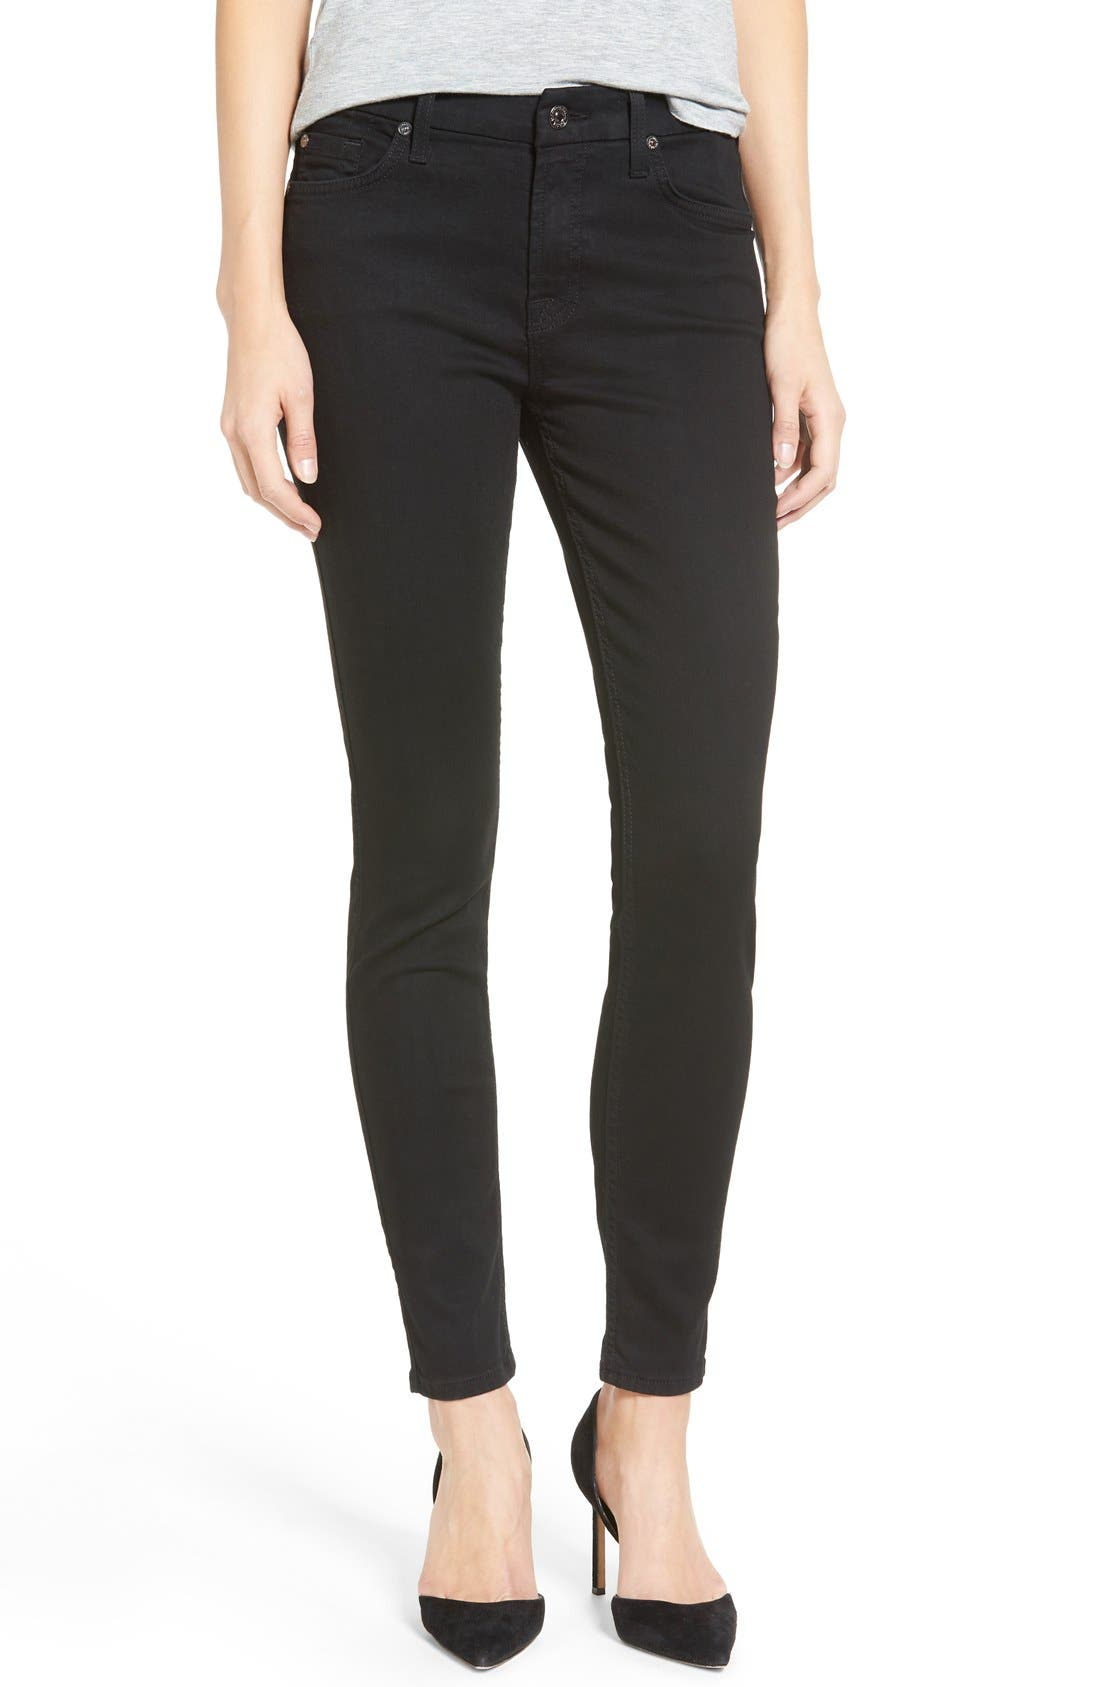 'b(air)' Ankle Skinny Jeans,                             Main thumbnail 1, color,                             Black